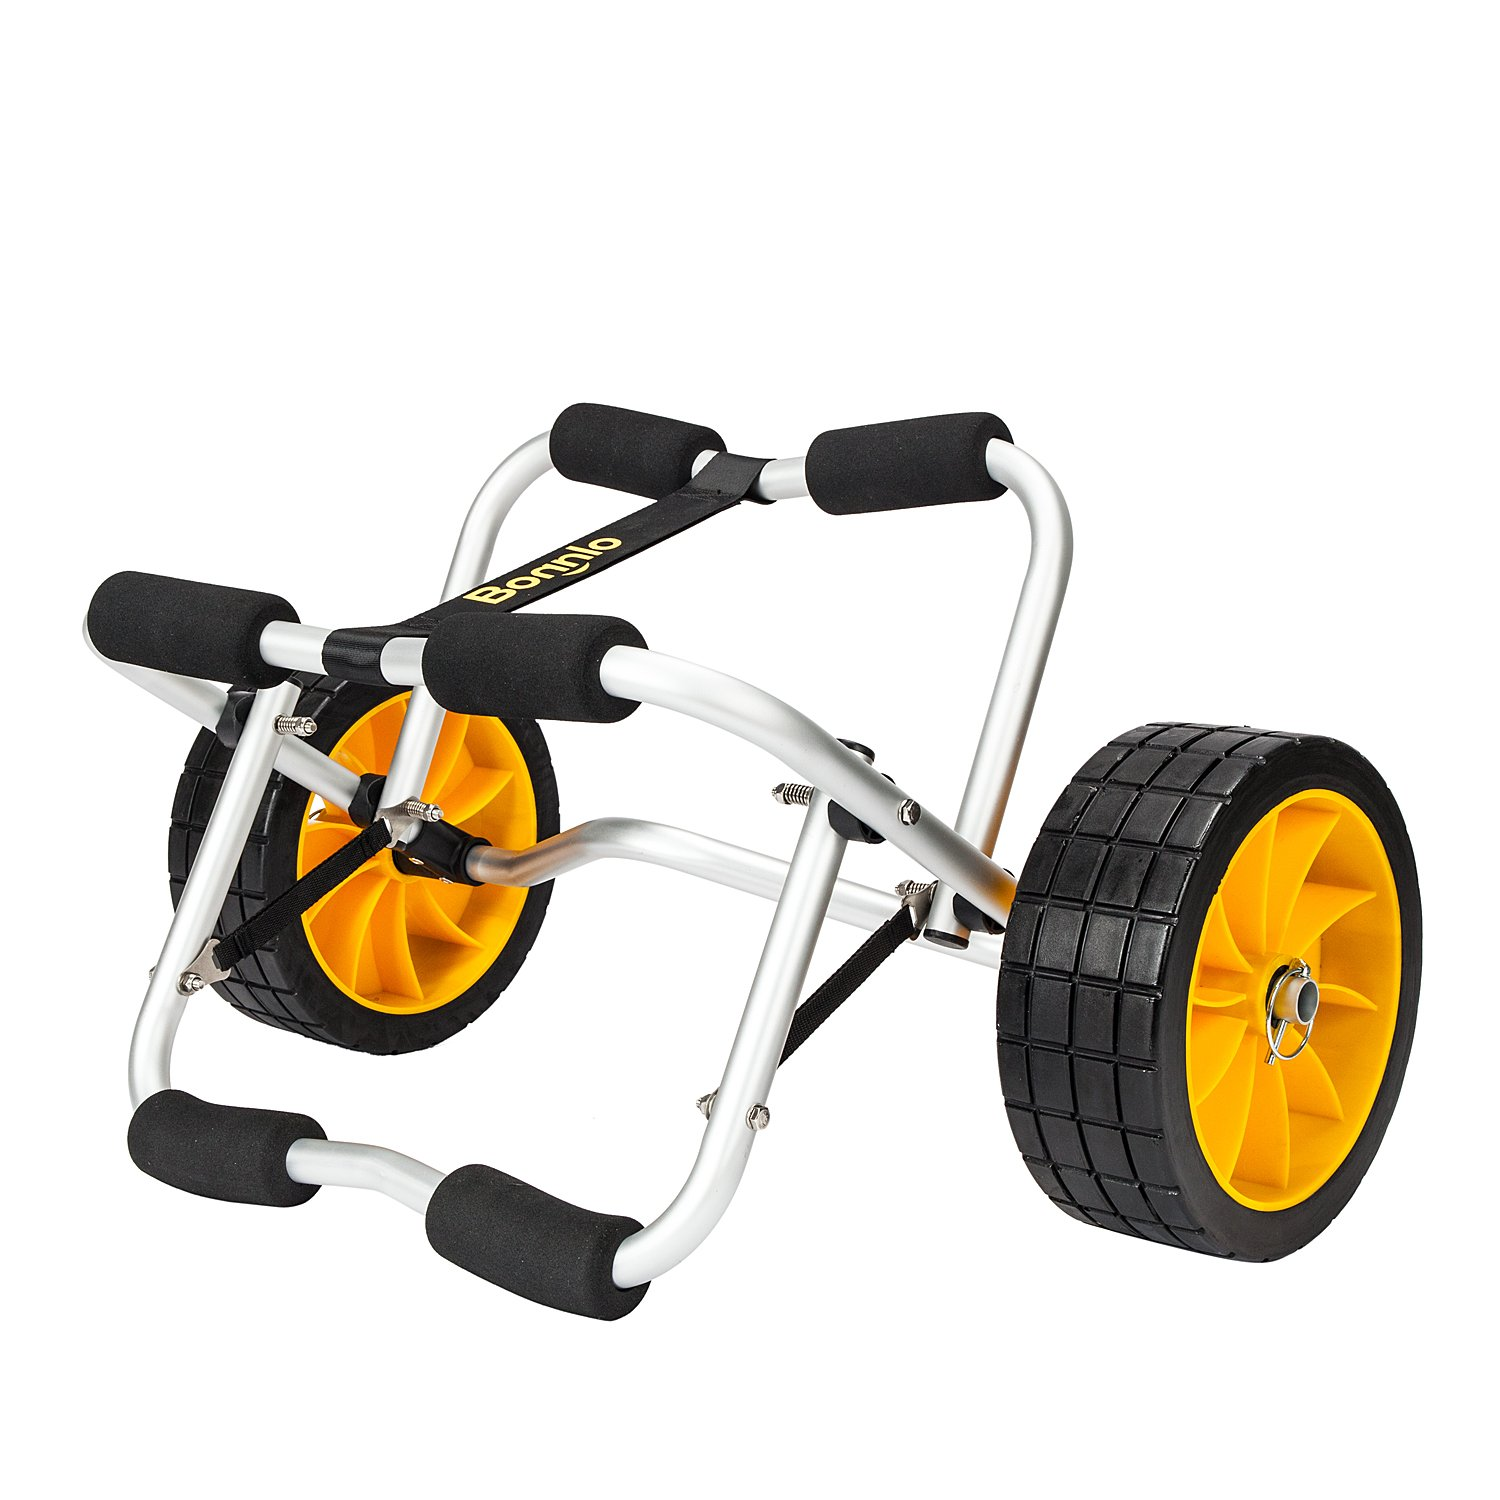 Bonnlo CART-CANOE Kayak Boat Carrier Tote Trolley Transport with PU Solid Tires Wheel Yellow